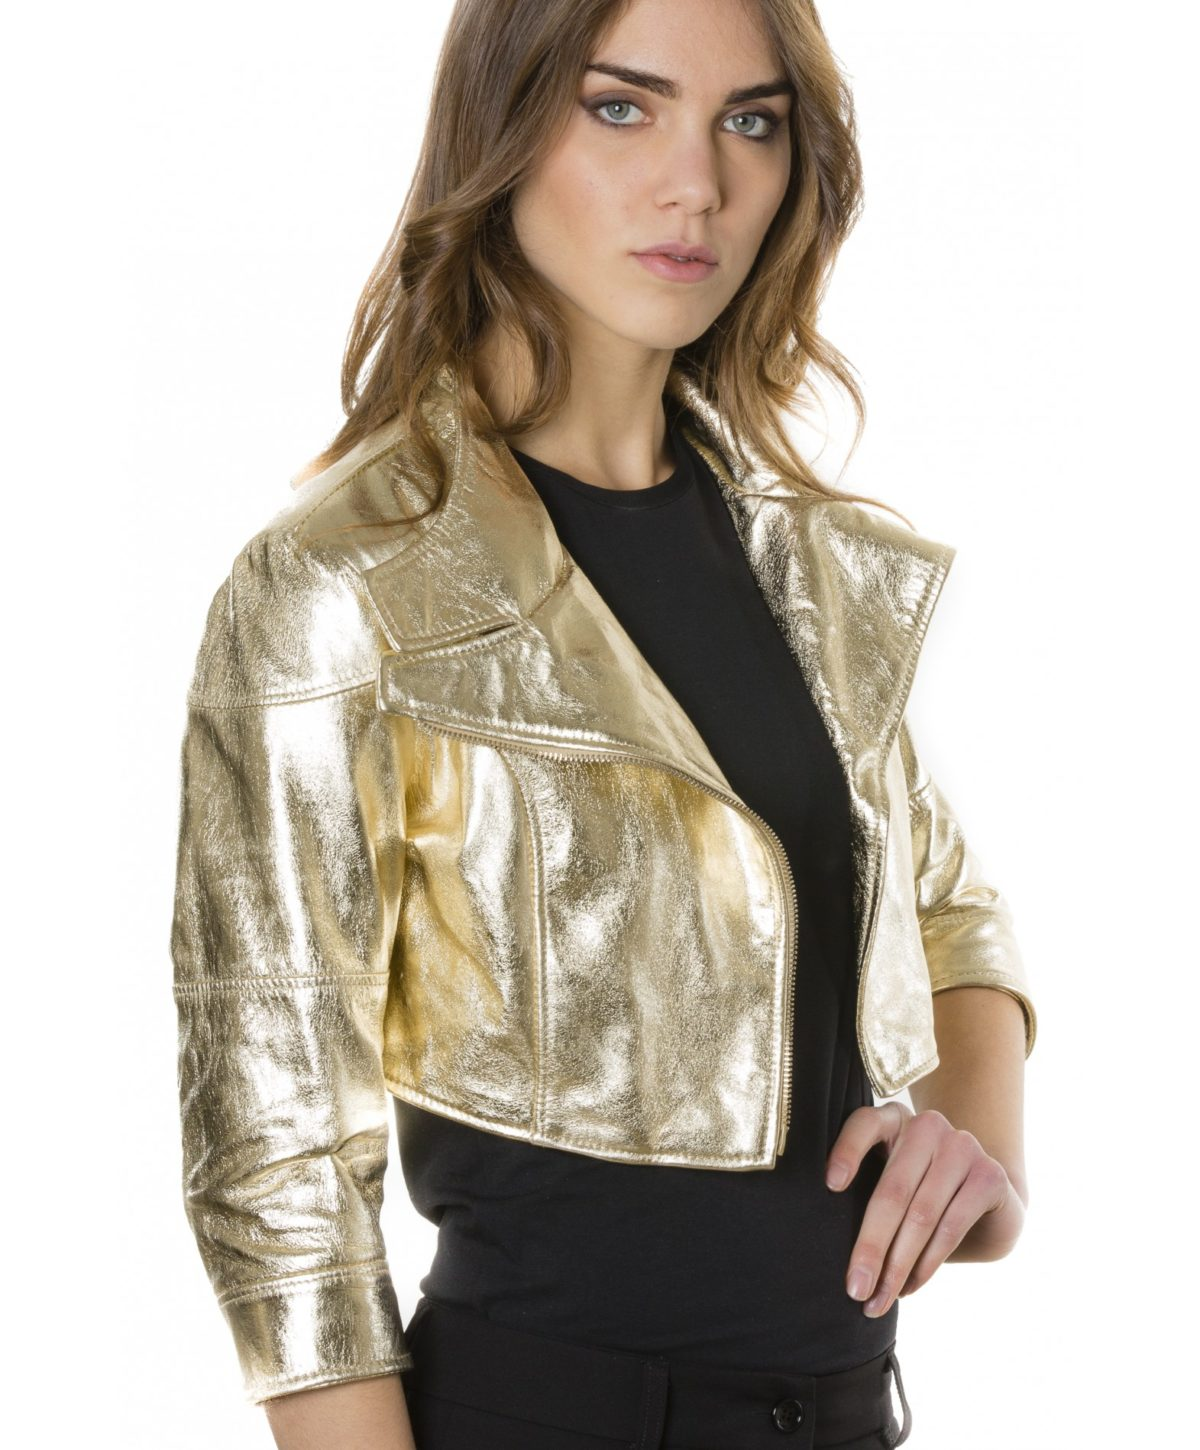 fiamma-gold-color-nappa-lamb-short-leather-jacket-smooth-effect (1)